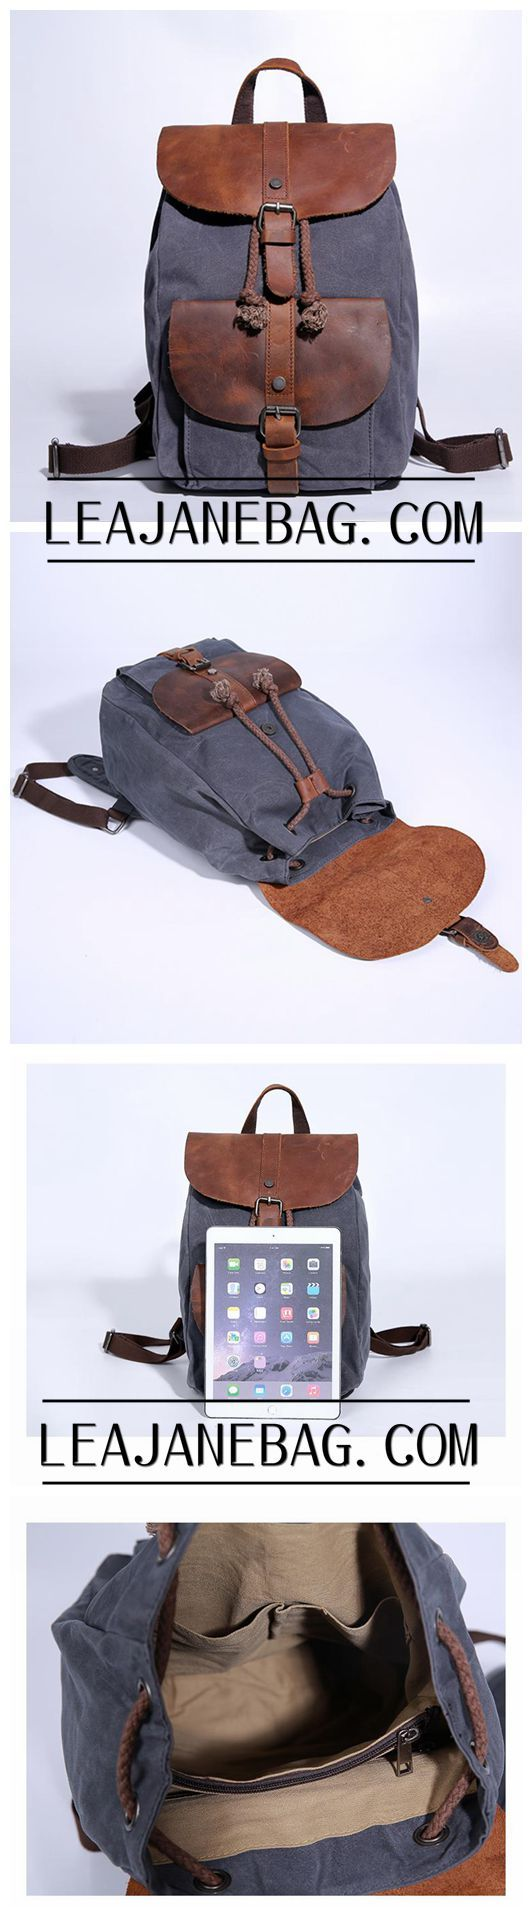 Waxed Canvas Backpack, Diaper backpack, School Backpack, Canvas Leather Laptop backpack JC021